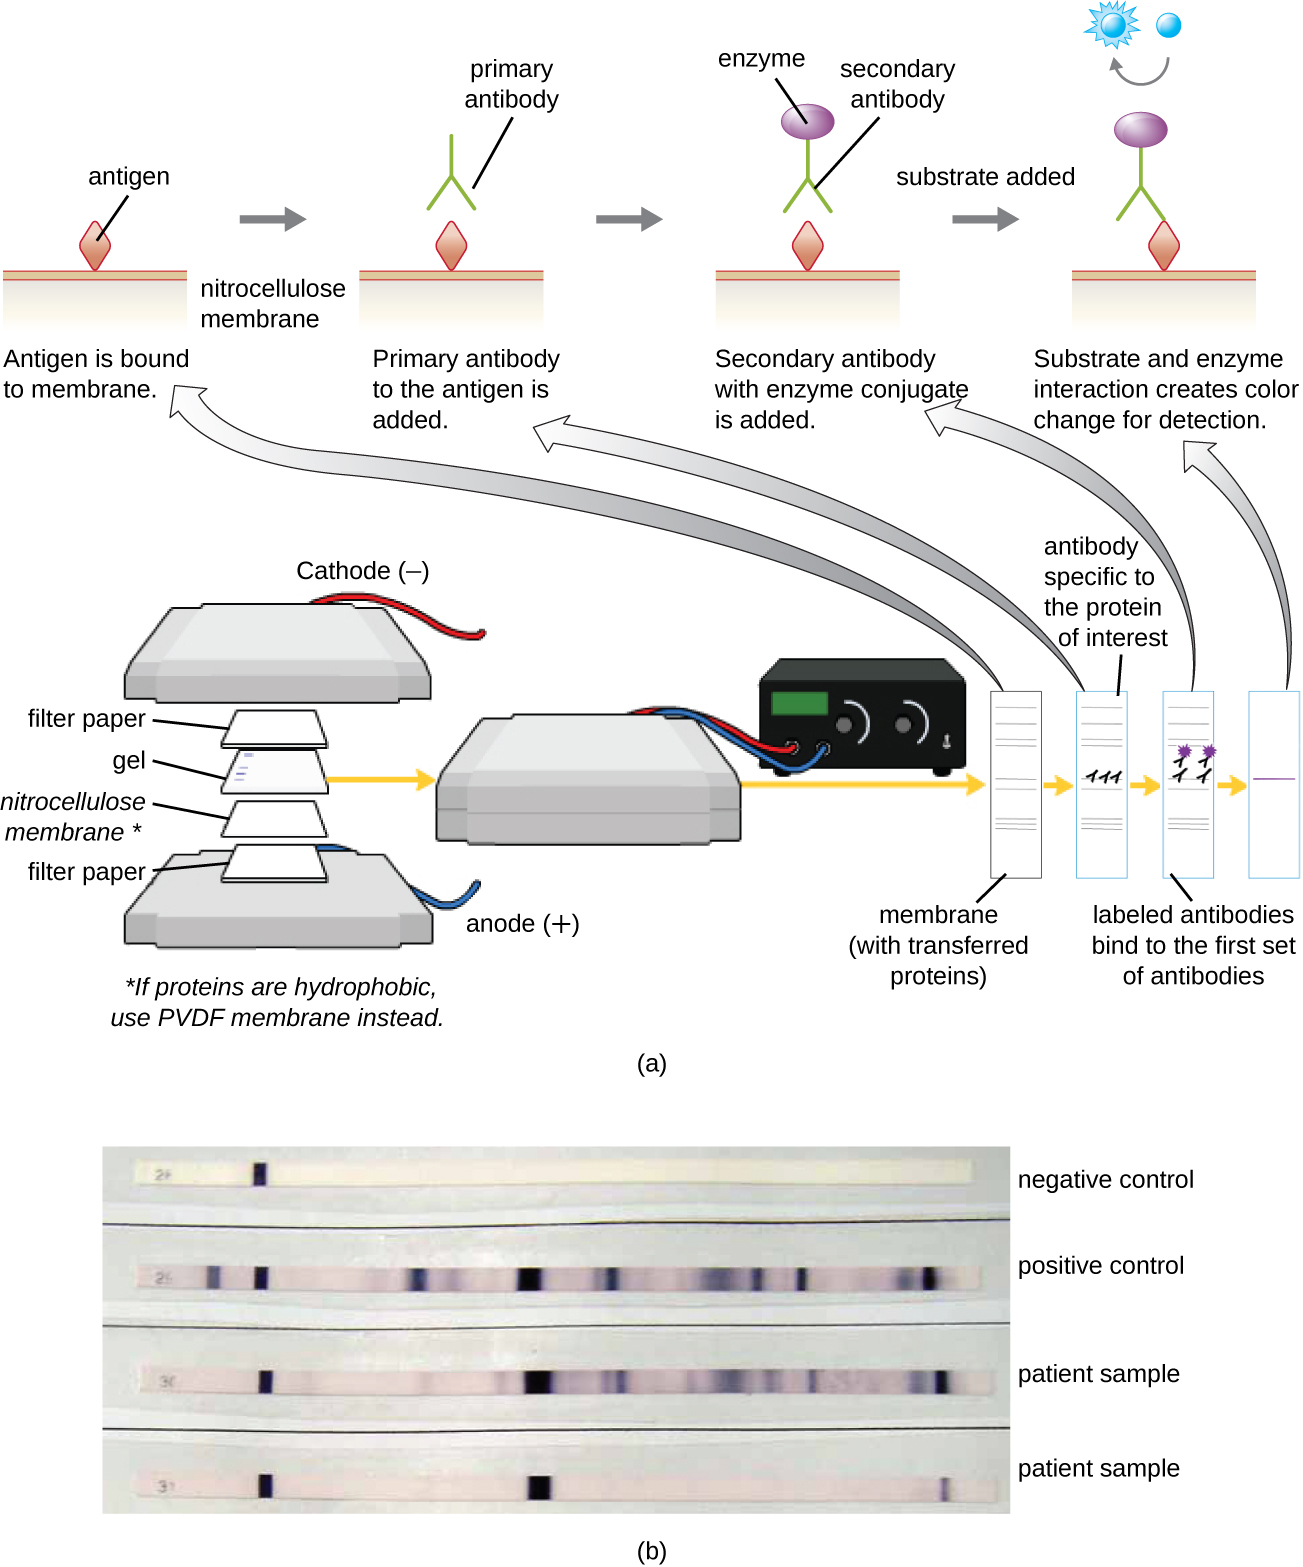 (a) A diagram showing the process of a western blot. Step 1 – a gel is on top of a nitrocellulose membrane and filter paper is on either side. This is all sandwiched between positive and negative plates. If the proteins are hydrophobic use PVDF membrane instead of nitrocellulose. This causes the proteins to bind to the membrane. At this point there are many protein bands.  Then antibodies specific to the protein on interest are added. They bind to one of the protein bands on the membrane. Next labeled antibodies bidn to the first set of antibodies. This results in a single visible band. (b) A photo of the results shows dark bands on a white membrane.